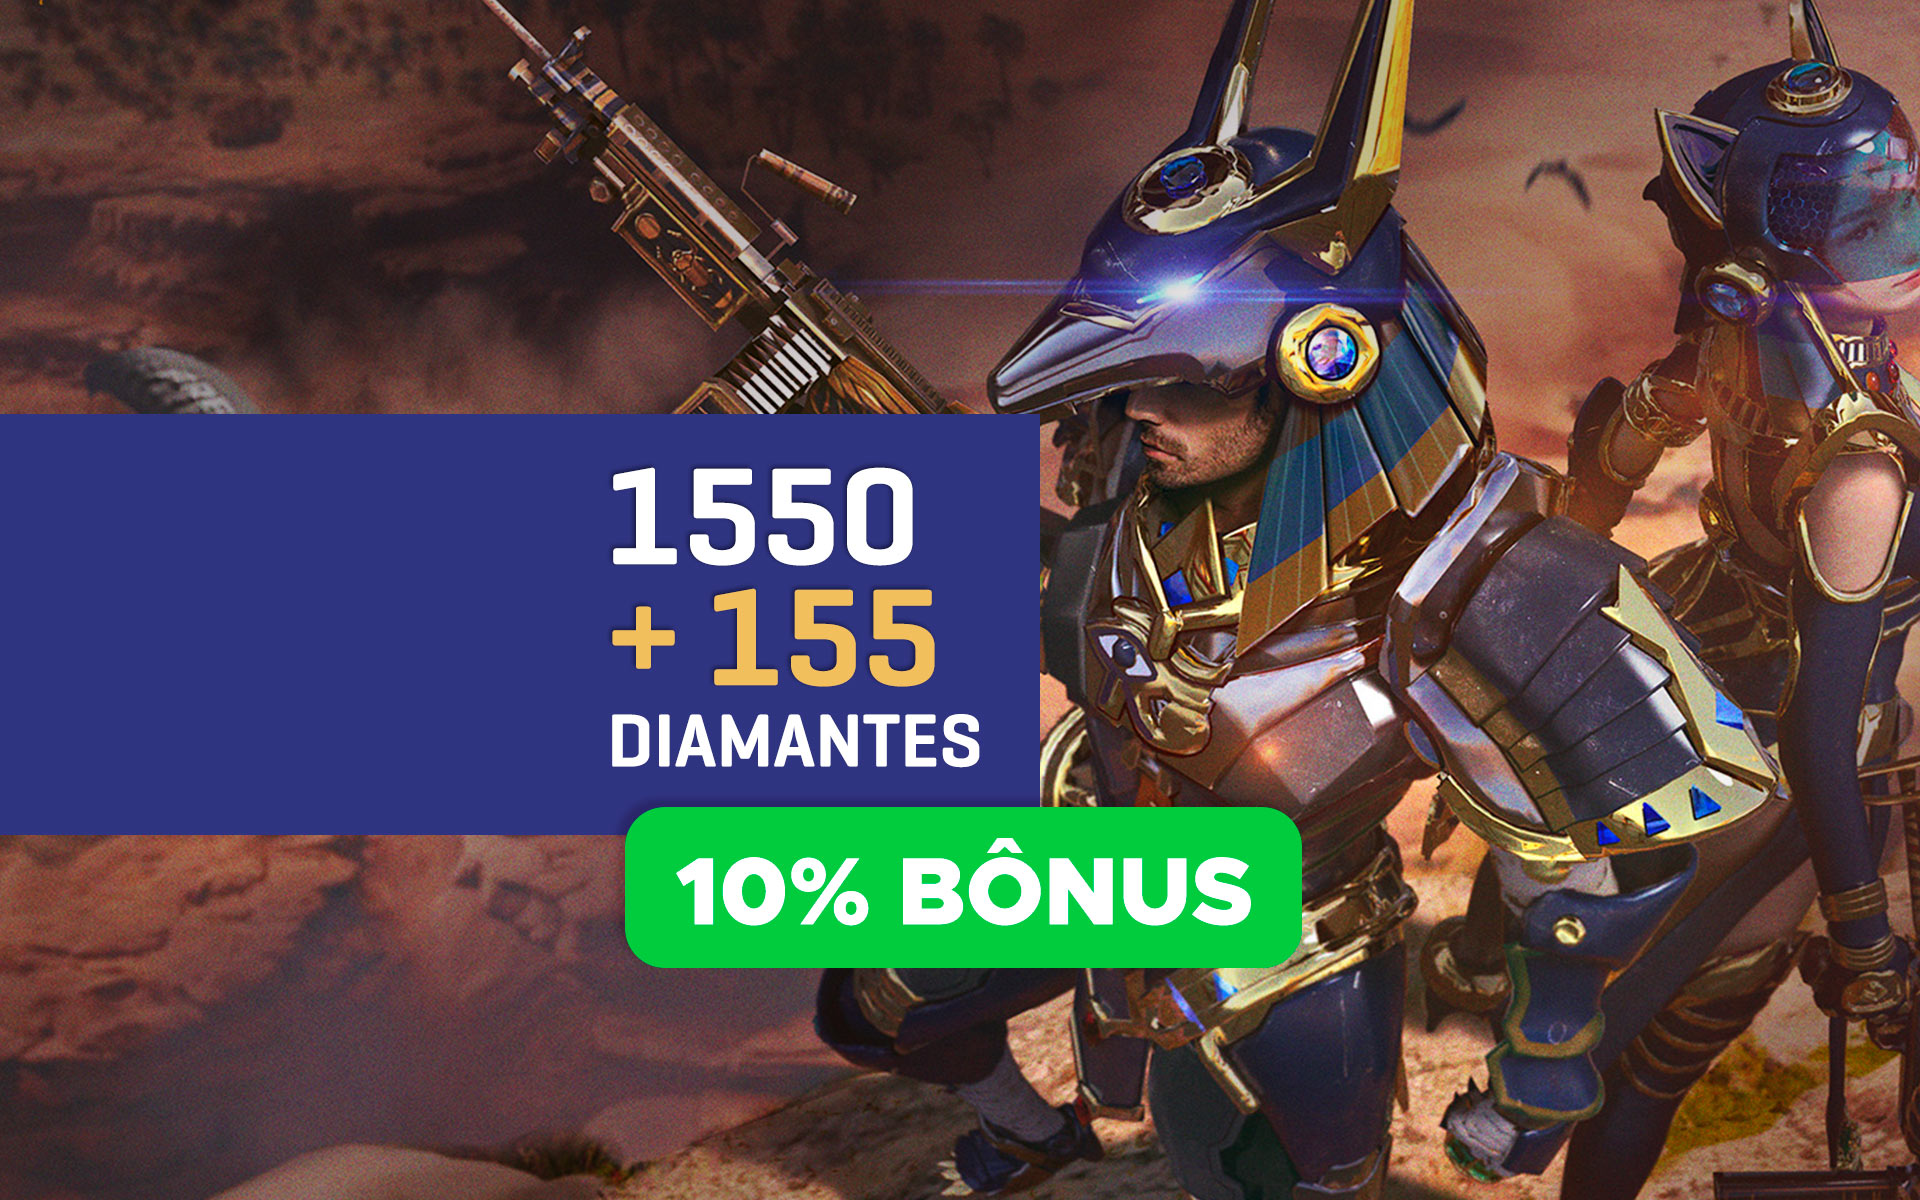 Free Fire - 1.550 Diamantes + 10% de Bônus cover